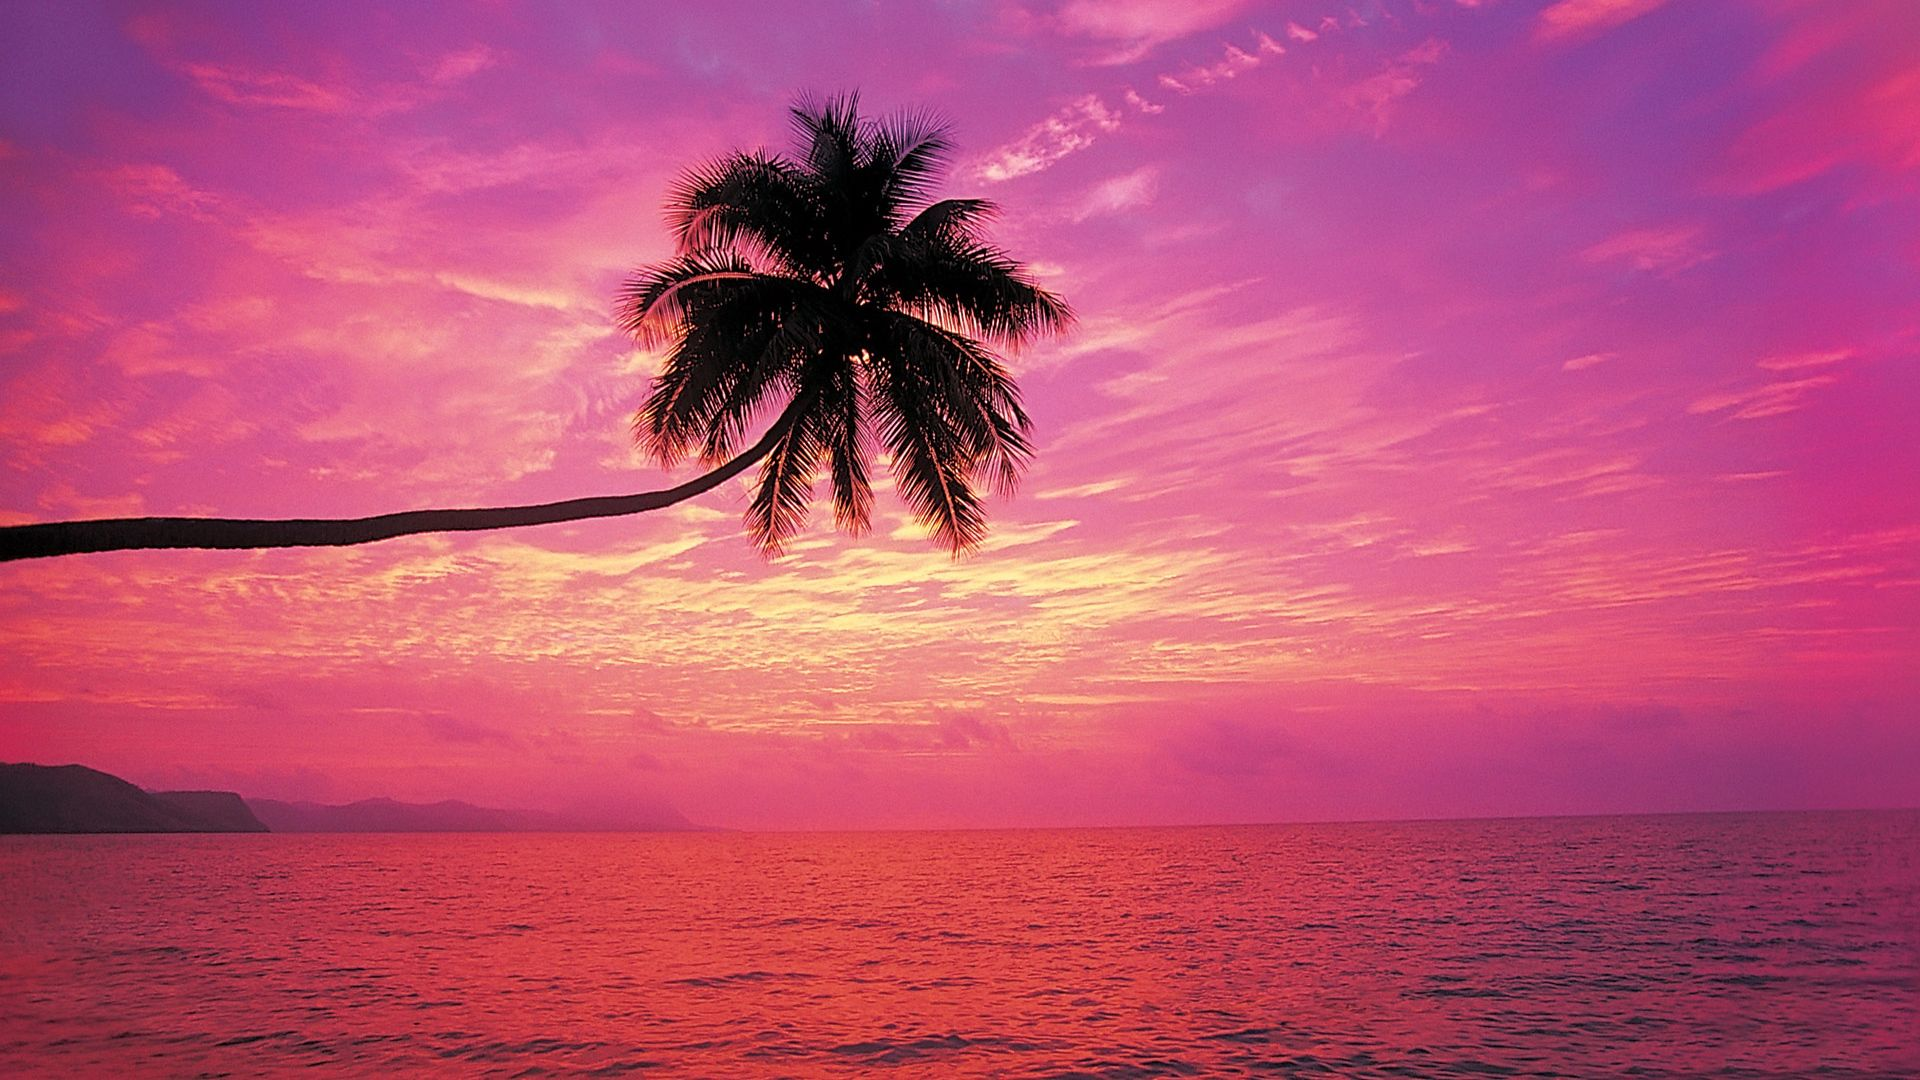 40 Romantic Beach Sunset Desktop Wallpapers   Download at 1920x1080